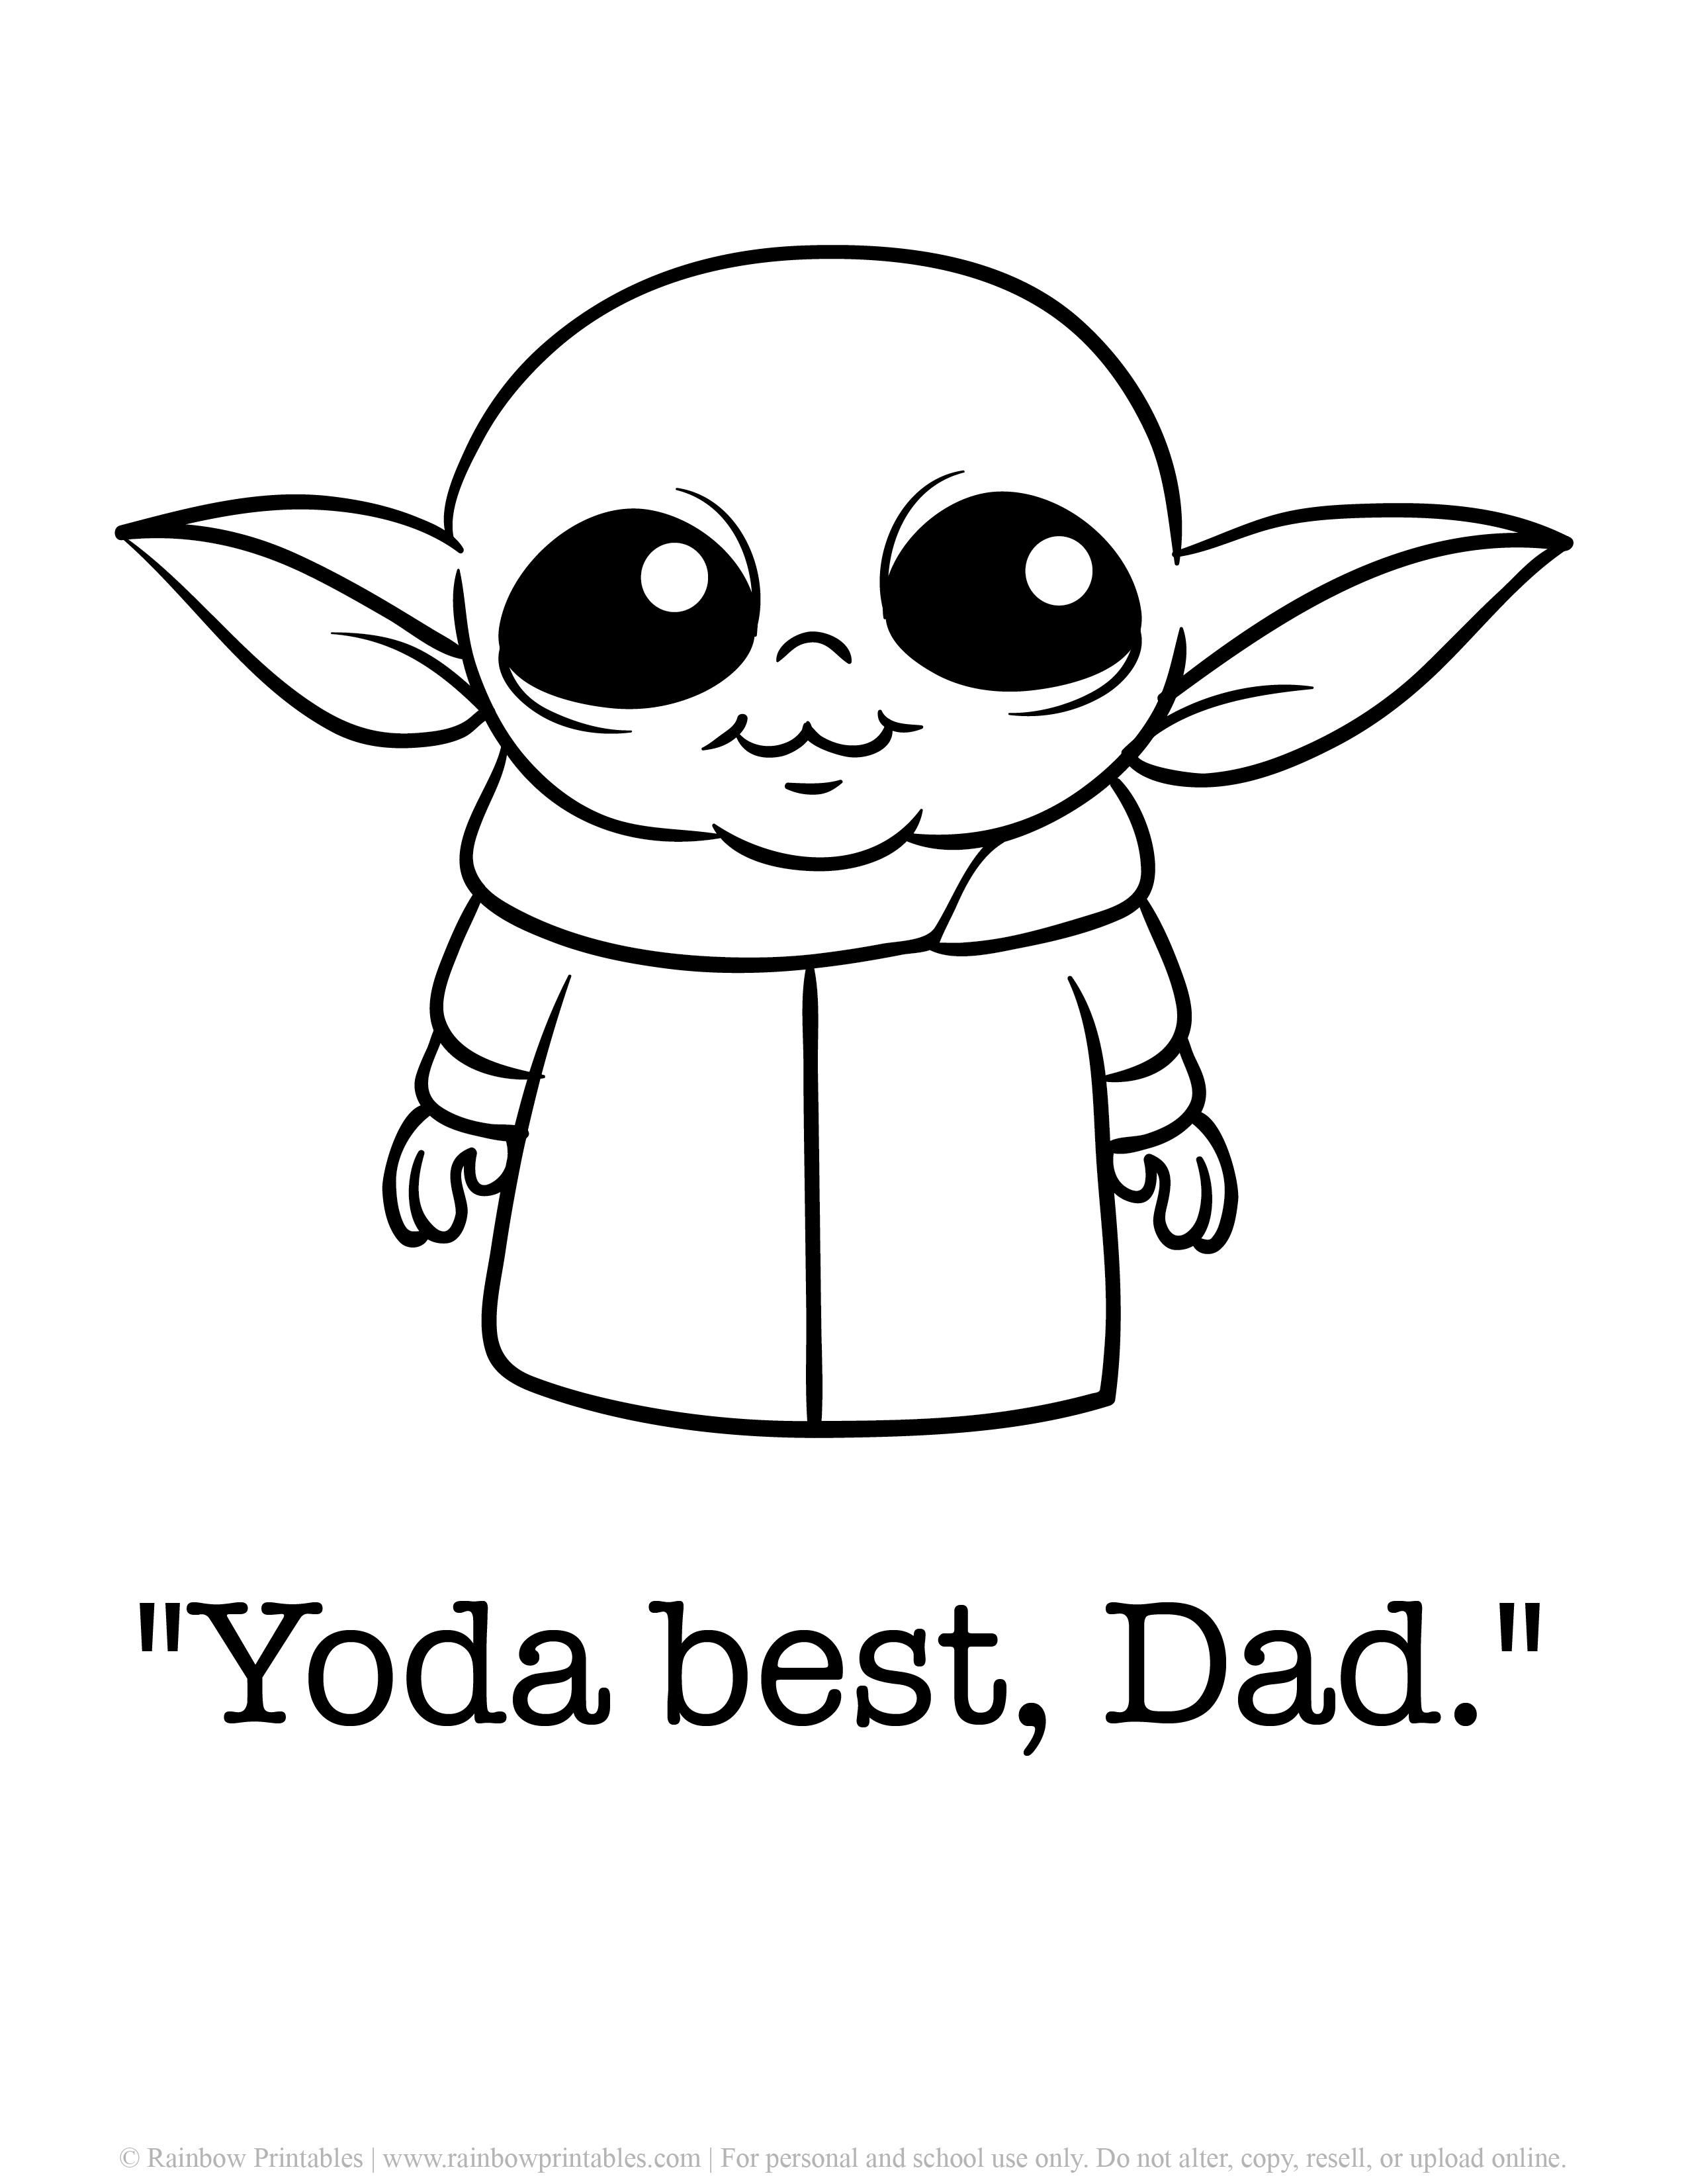 Cute Yoda Pun & Father's Day Punny Cards Coloring Pages Baby Yoda Star Wars Pop Culture Happy Father's Day Alien Printable